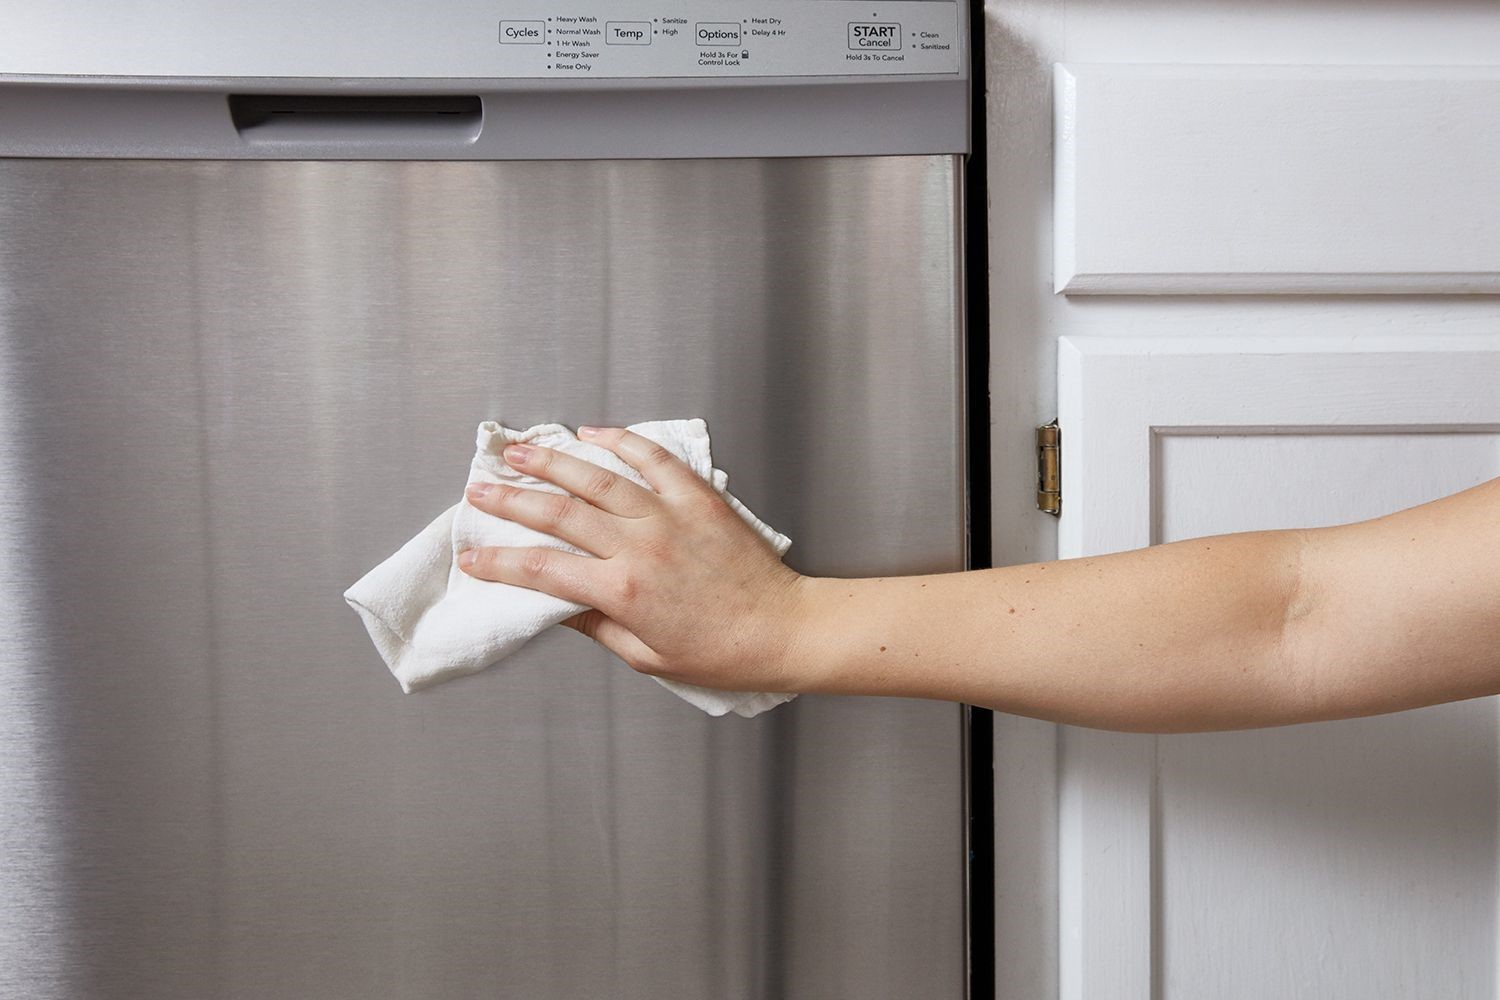 How To Make Your Stainless-Steel Appliances Shiny Again